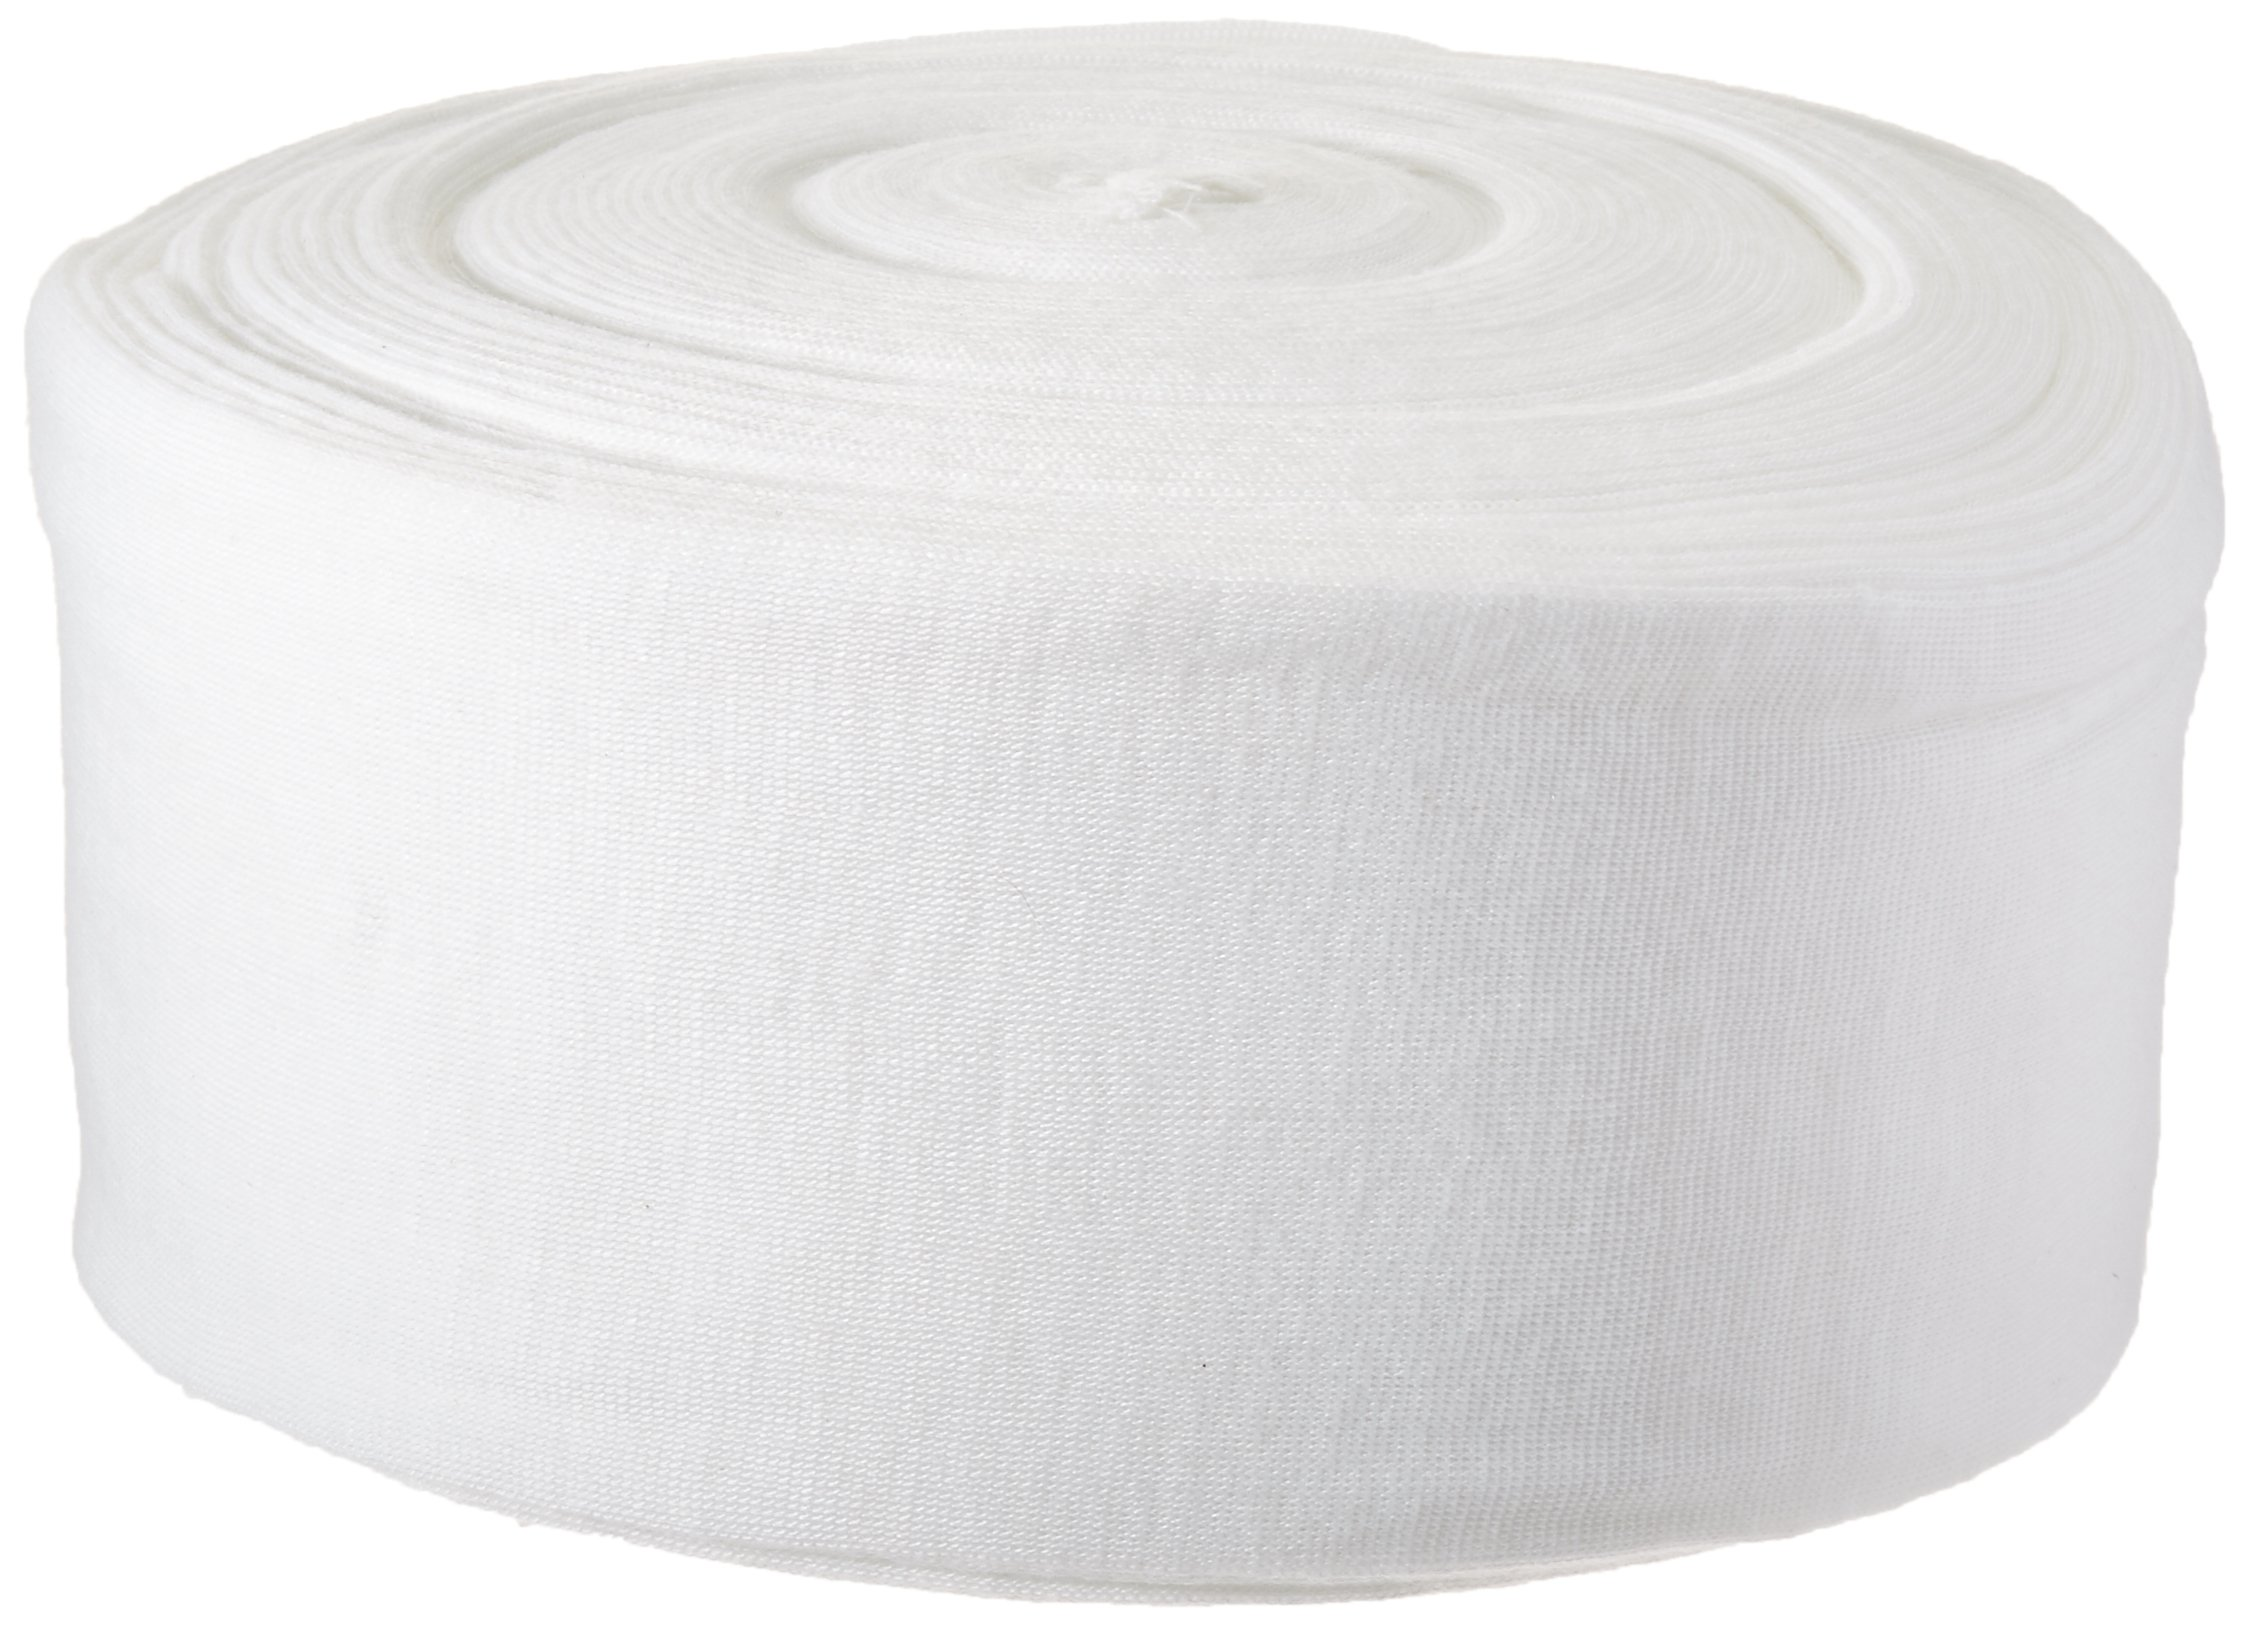 Rolyan Stockinette with Anti-Microbial Built-In, Multiple Sizes, 25 Yard Roll, Tubular Arm Stockinette for Cast, Brace, and Splint Padding, Odor Resistant, Antimicrobial, 100% Polyester Wrap by Rolyan